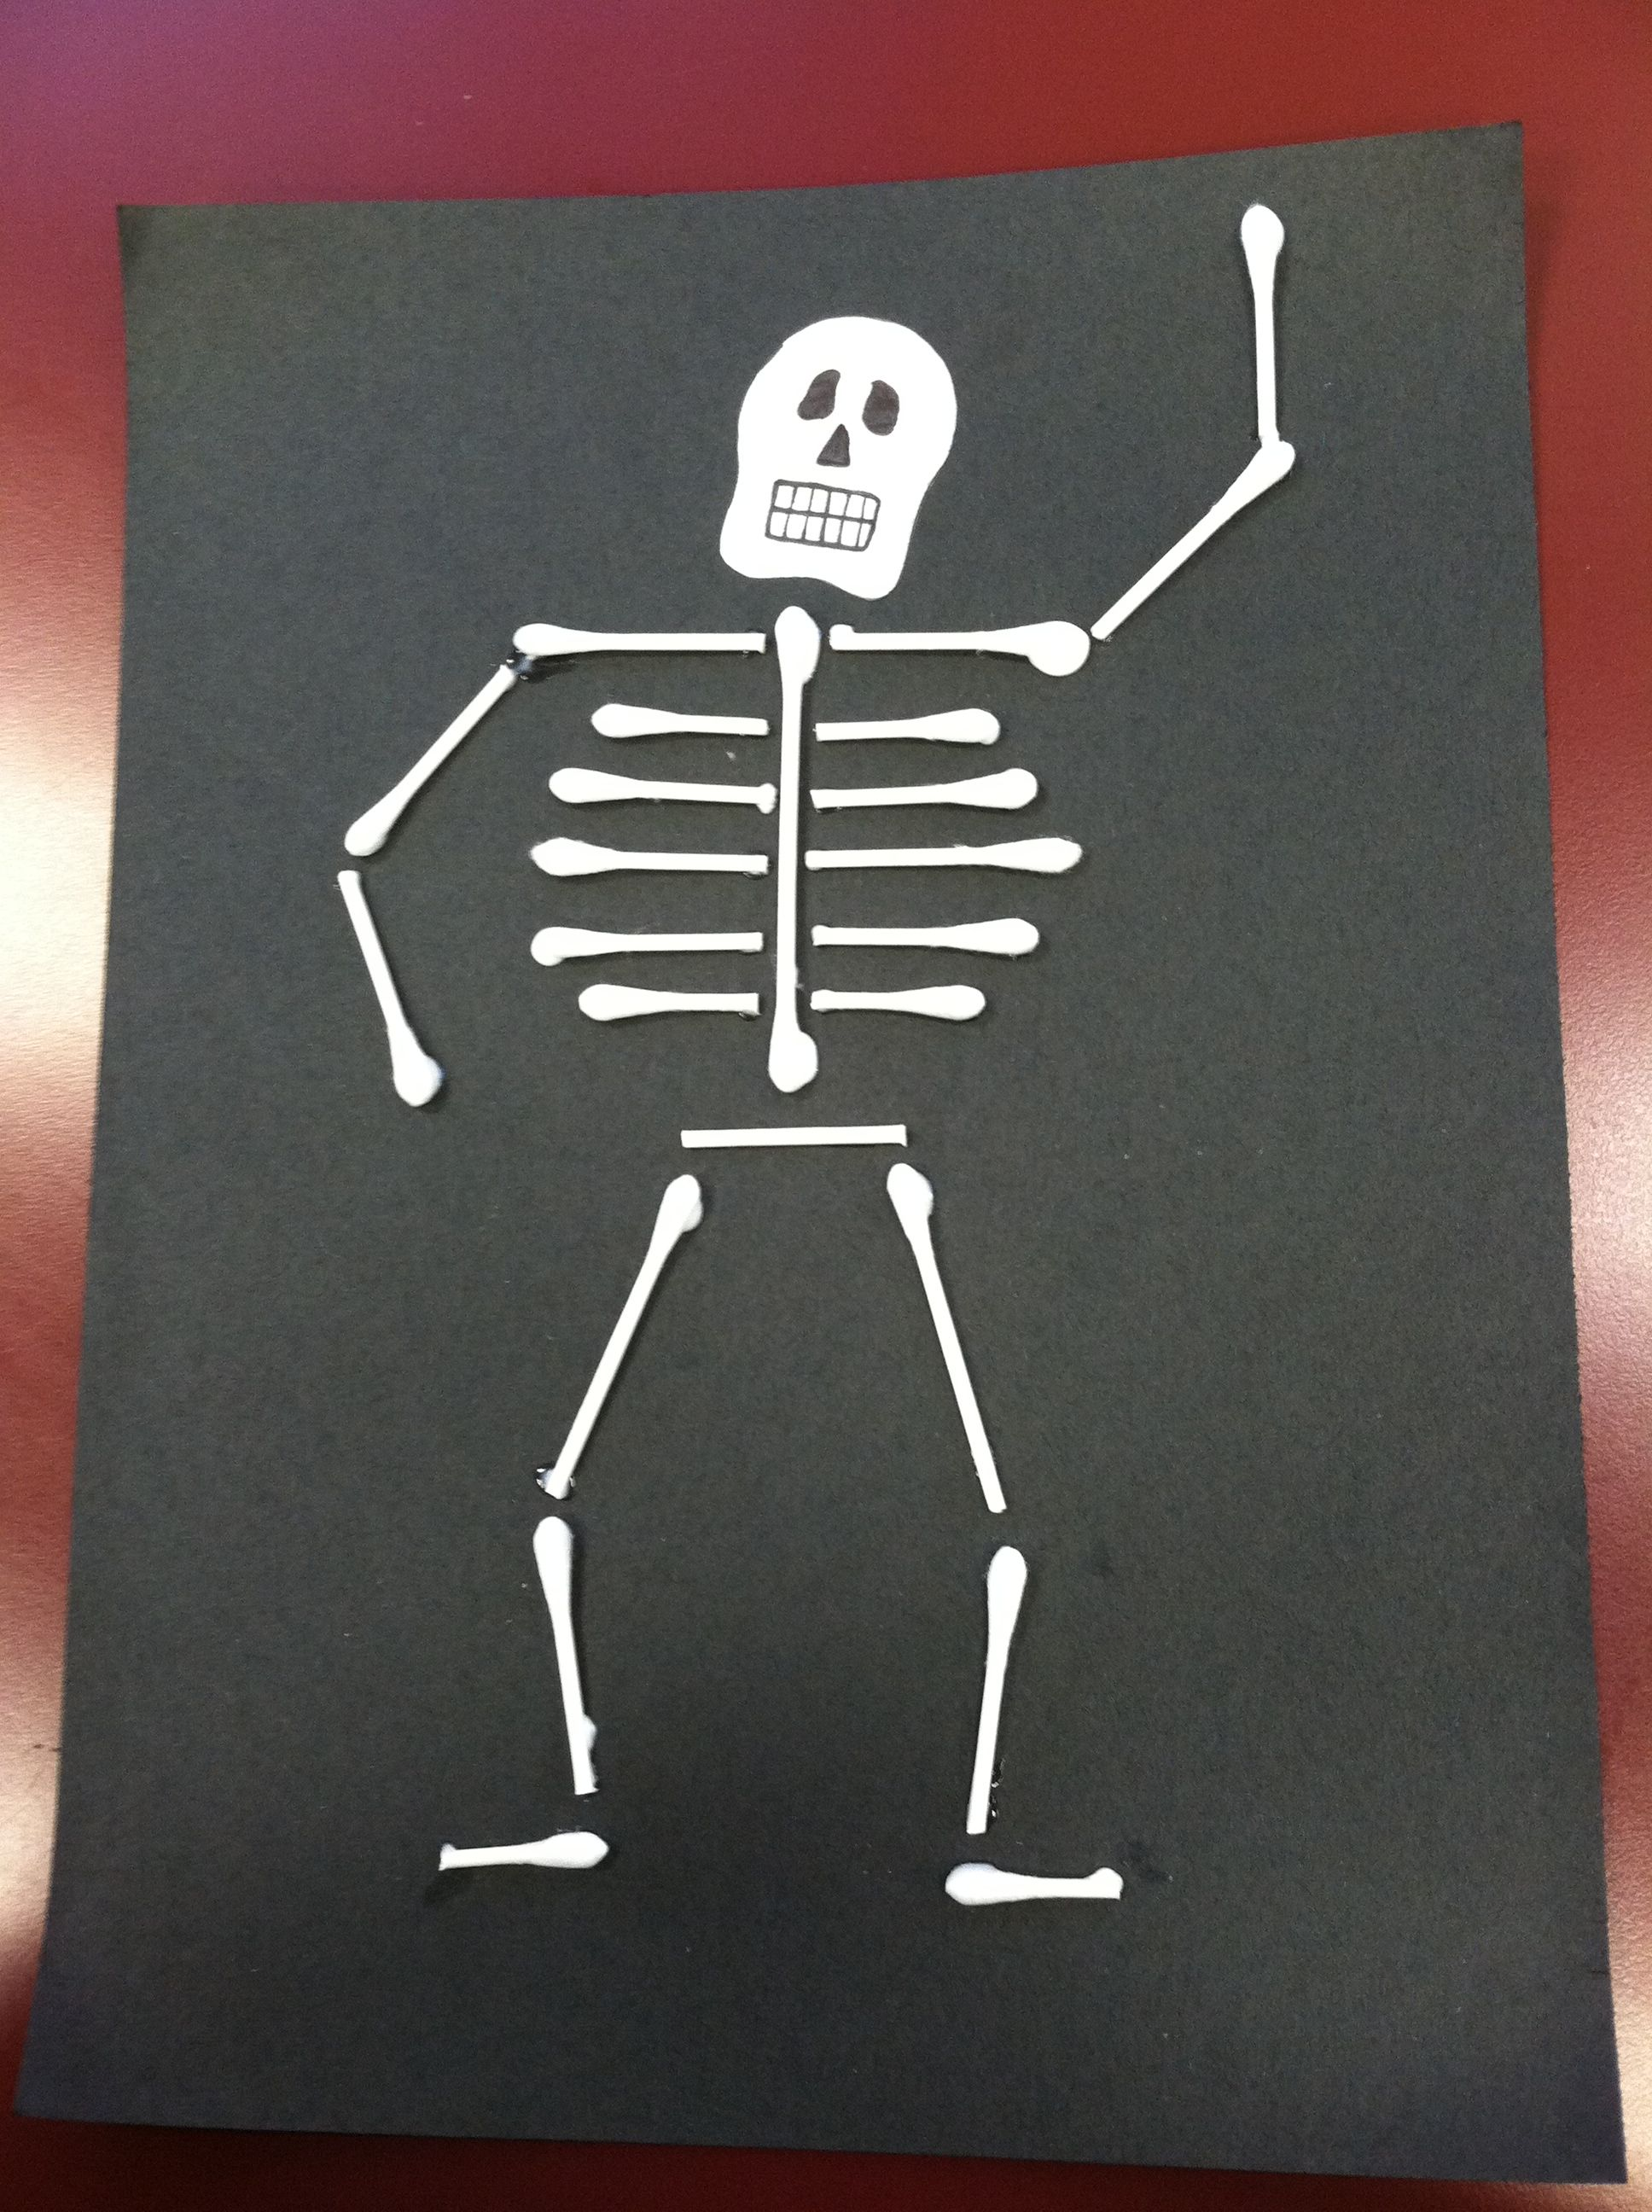 Amy's q-tip skeleton is better than yours